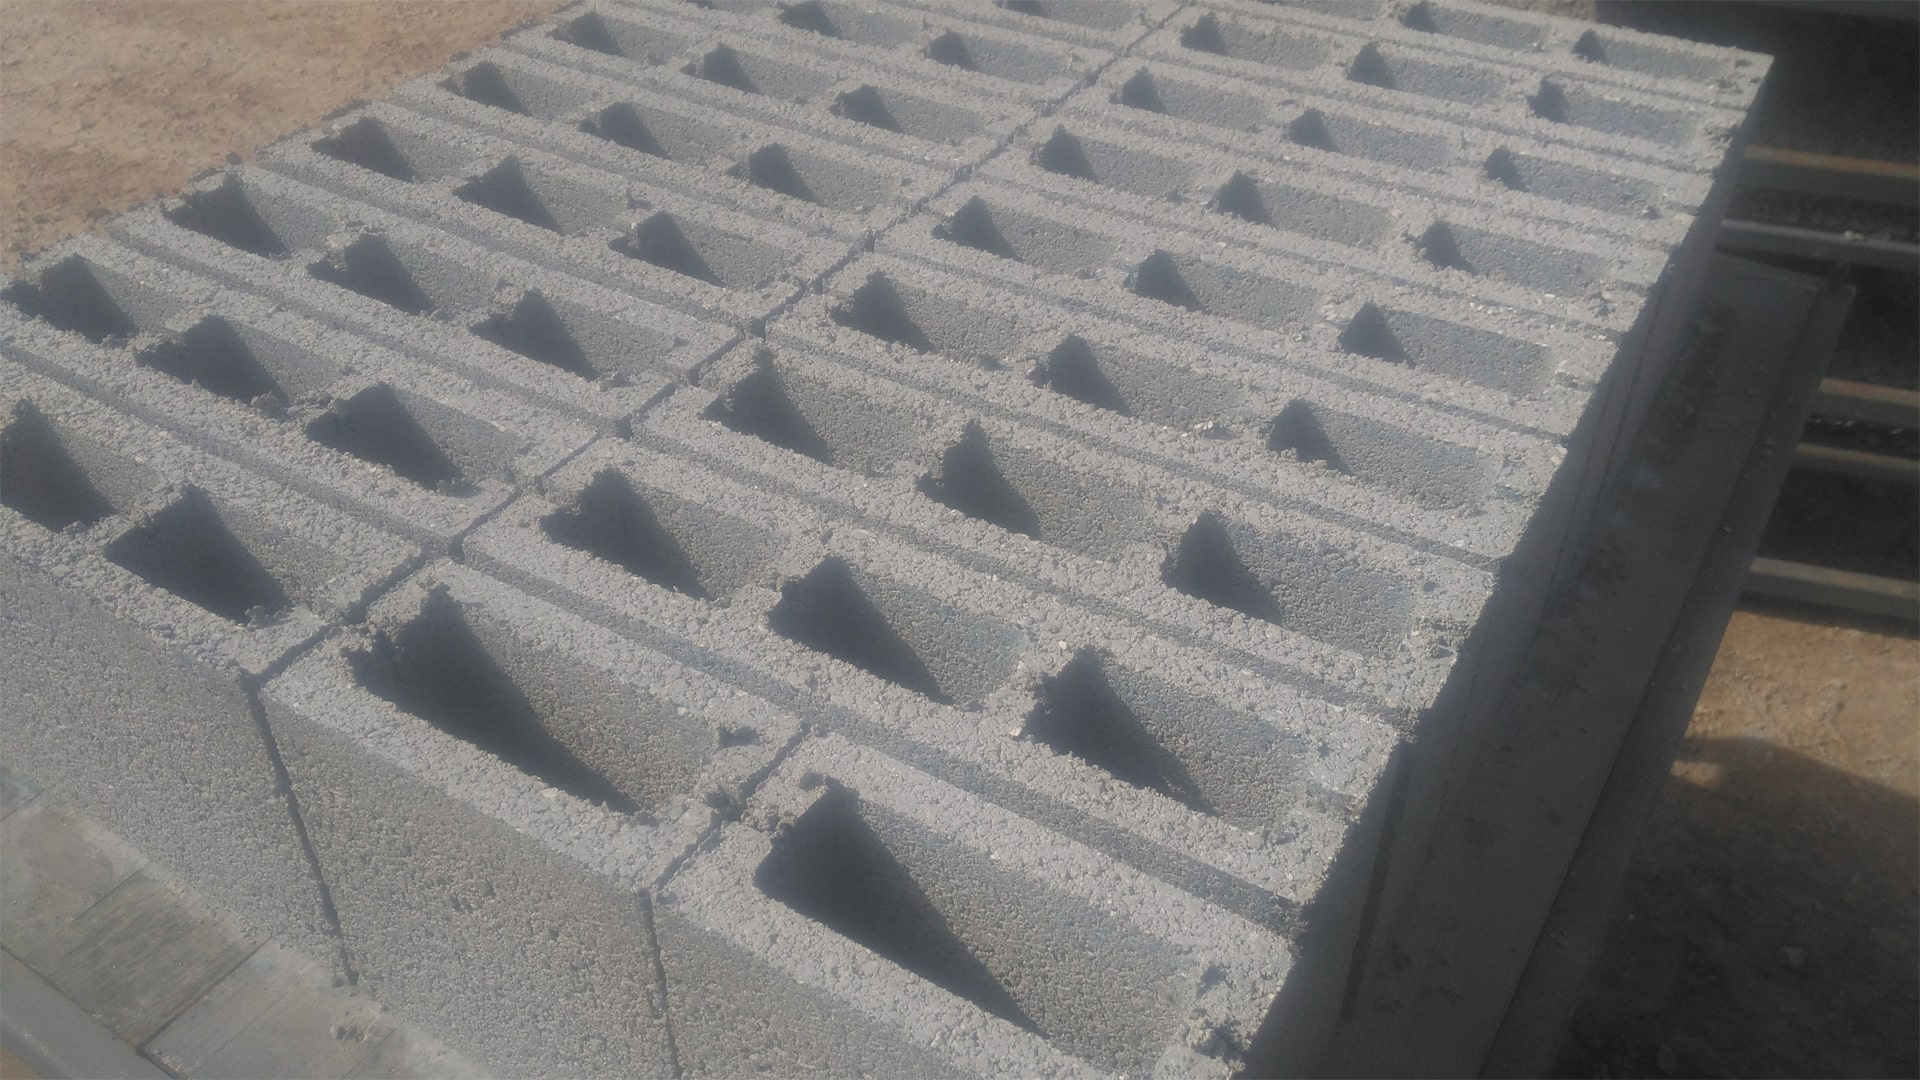 Ready-Concrete-Hollow-Block.jpg